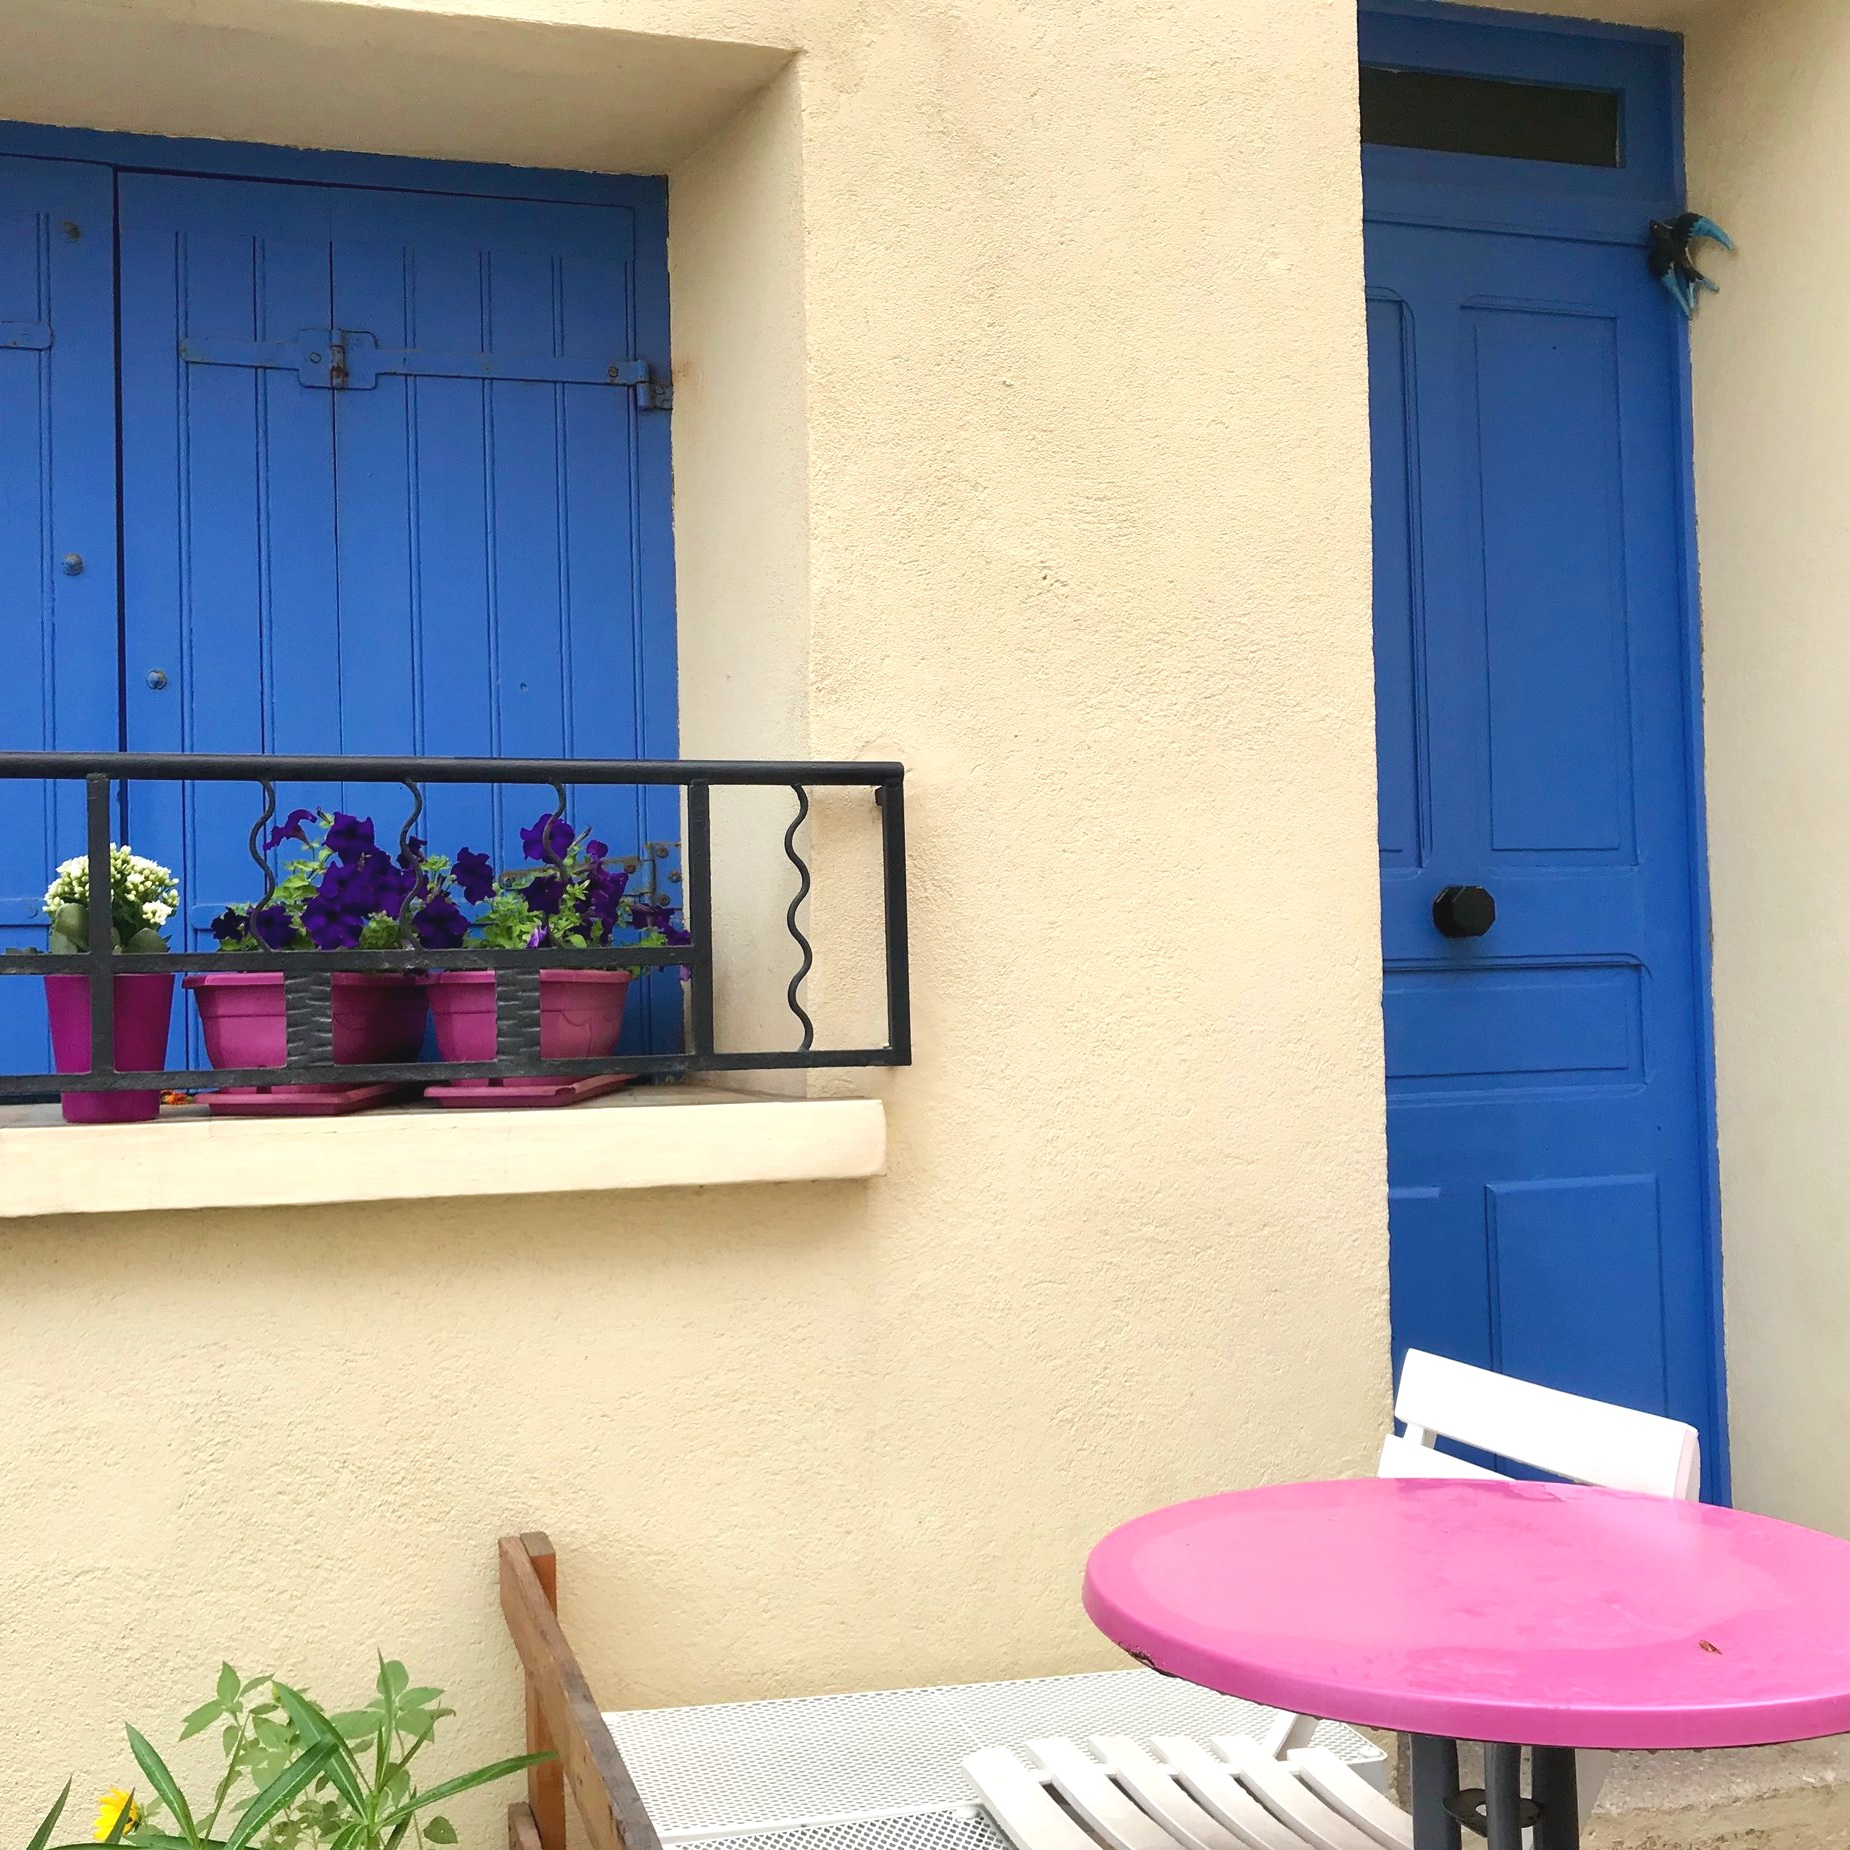 A manicured French house of ultramarine blue and rose pink with a creamy background. Yum!